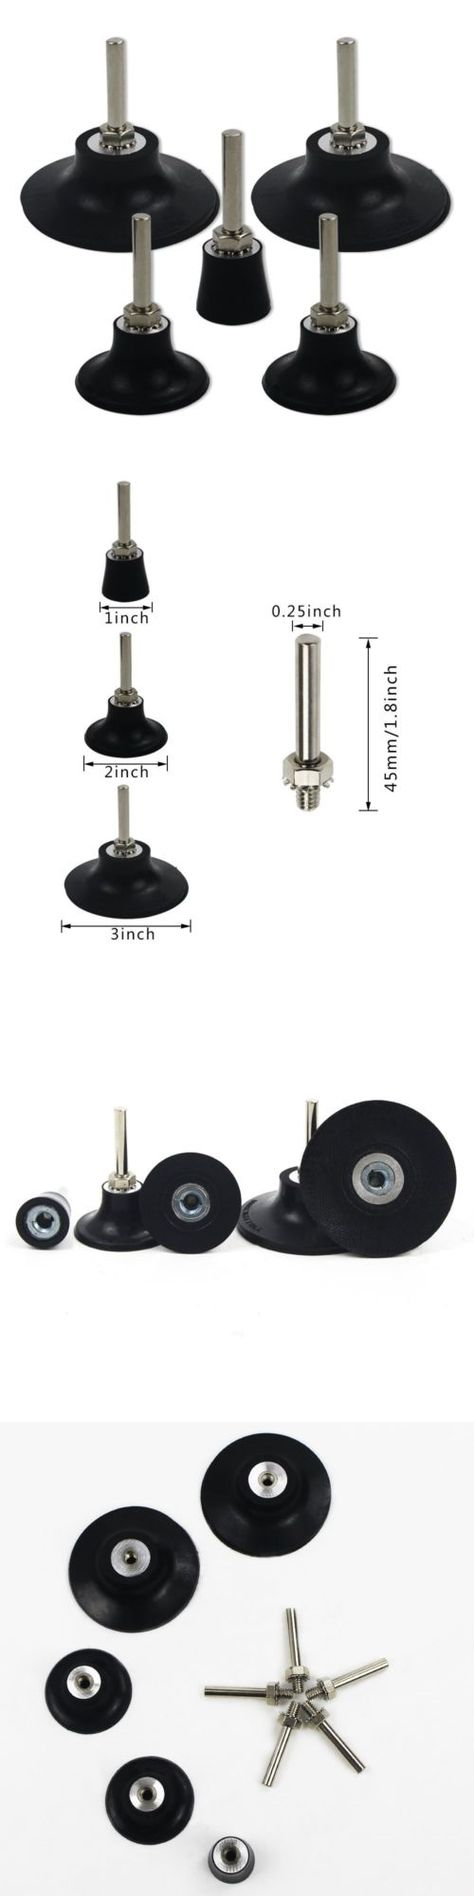 Sander Parts And Accessories 20796 Cocesa 5 Quick Replacement Roloc Disc Pad Holder Shank Polishing Rotating Tools With Images Tools For Sale Ebay Parts And Accessories